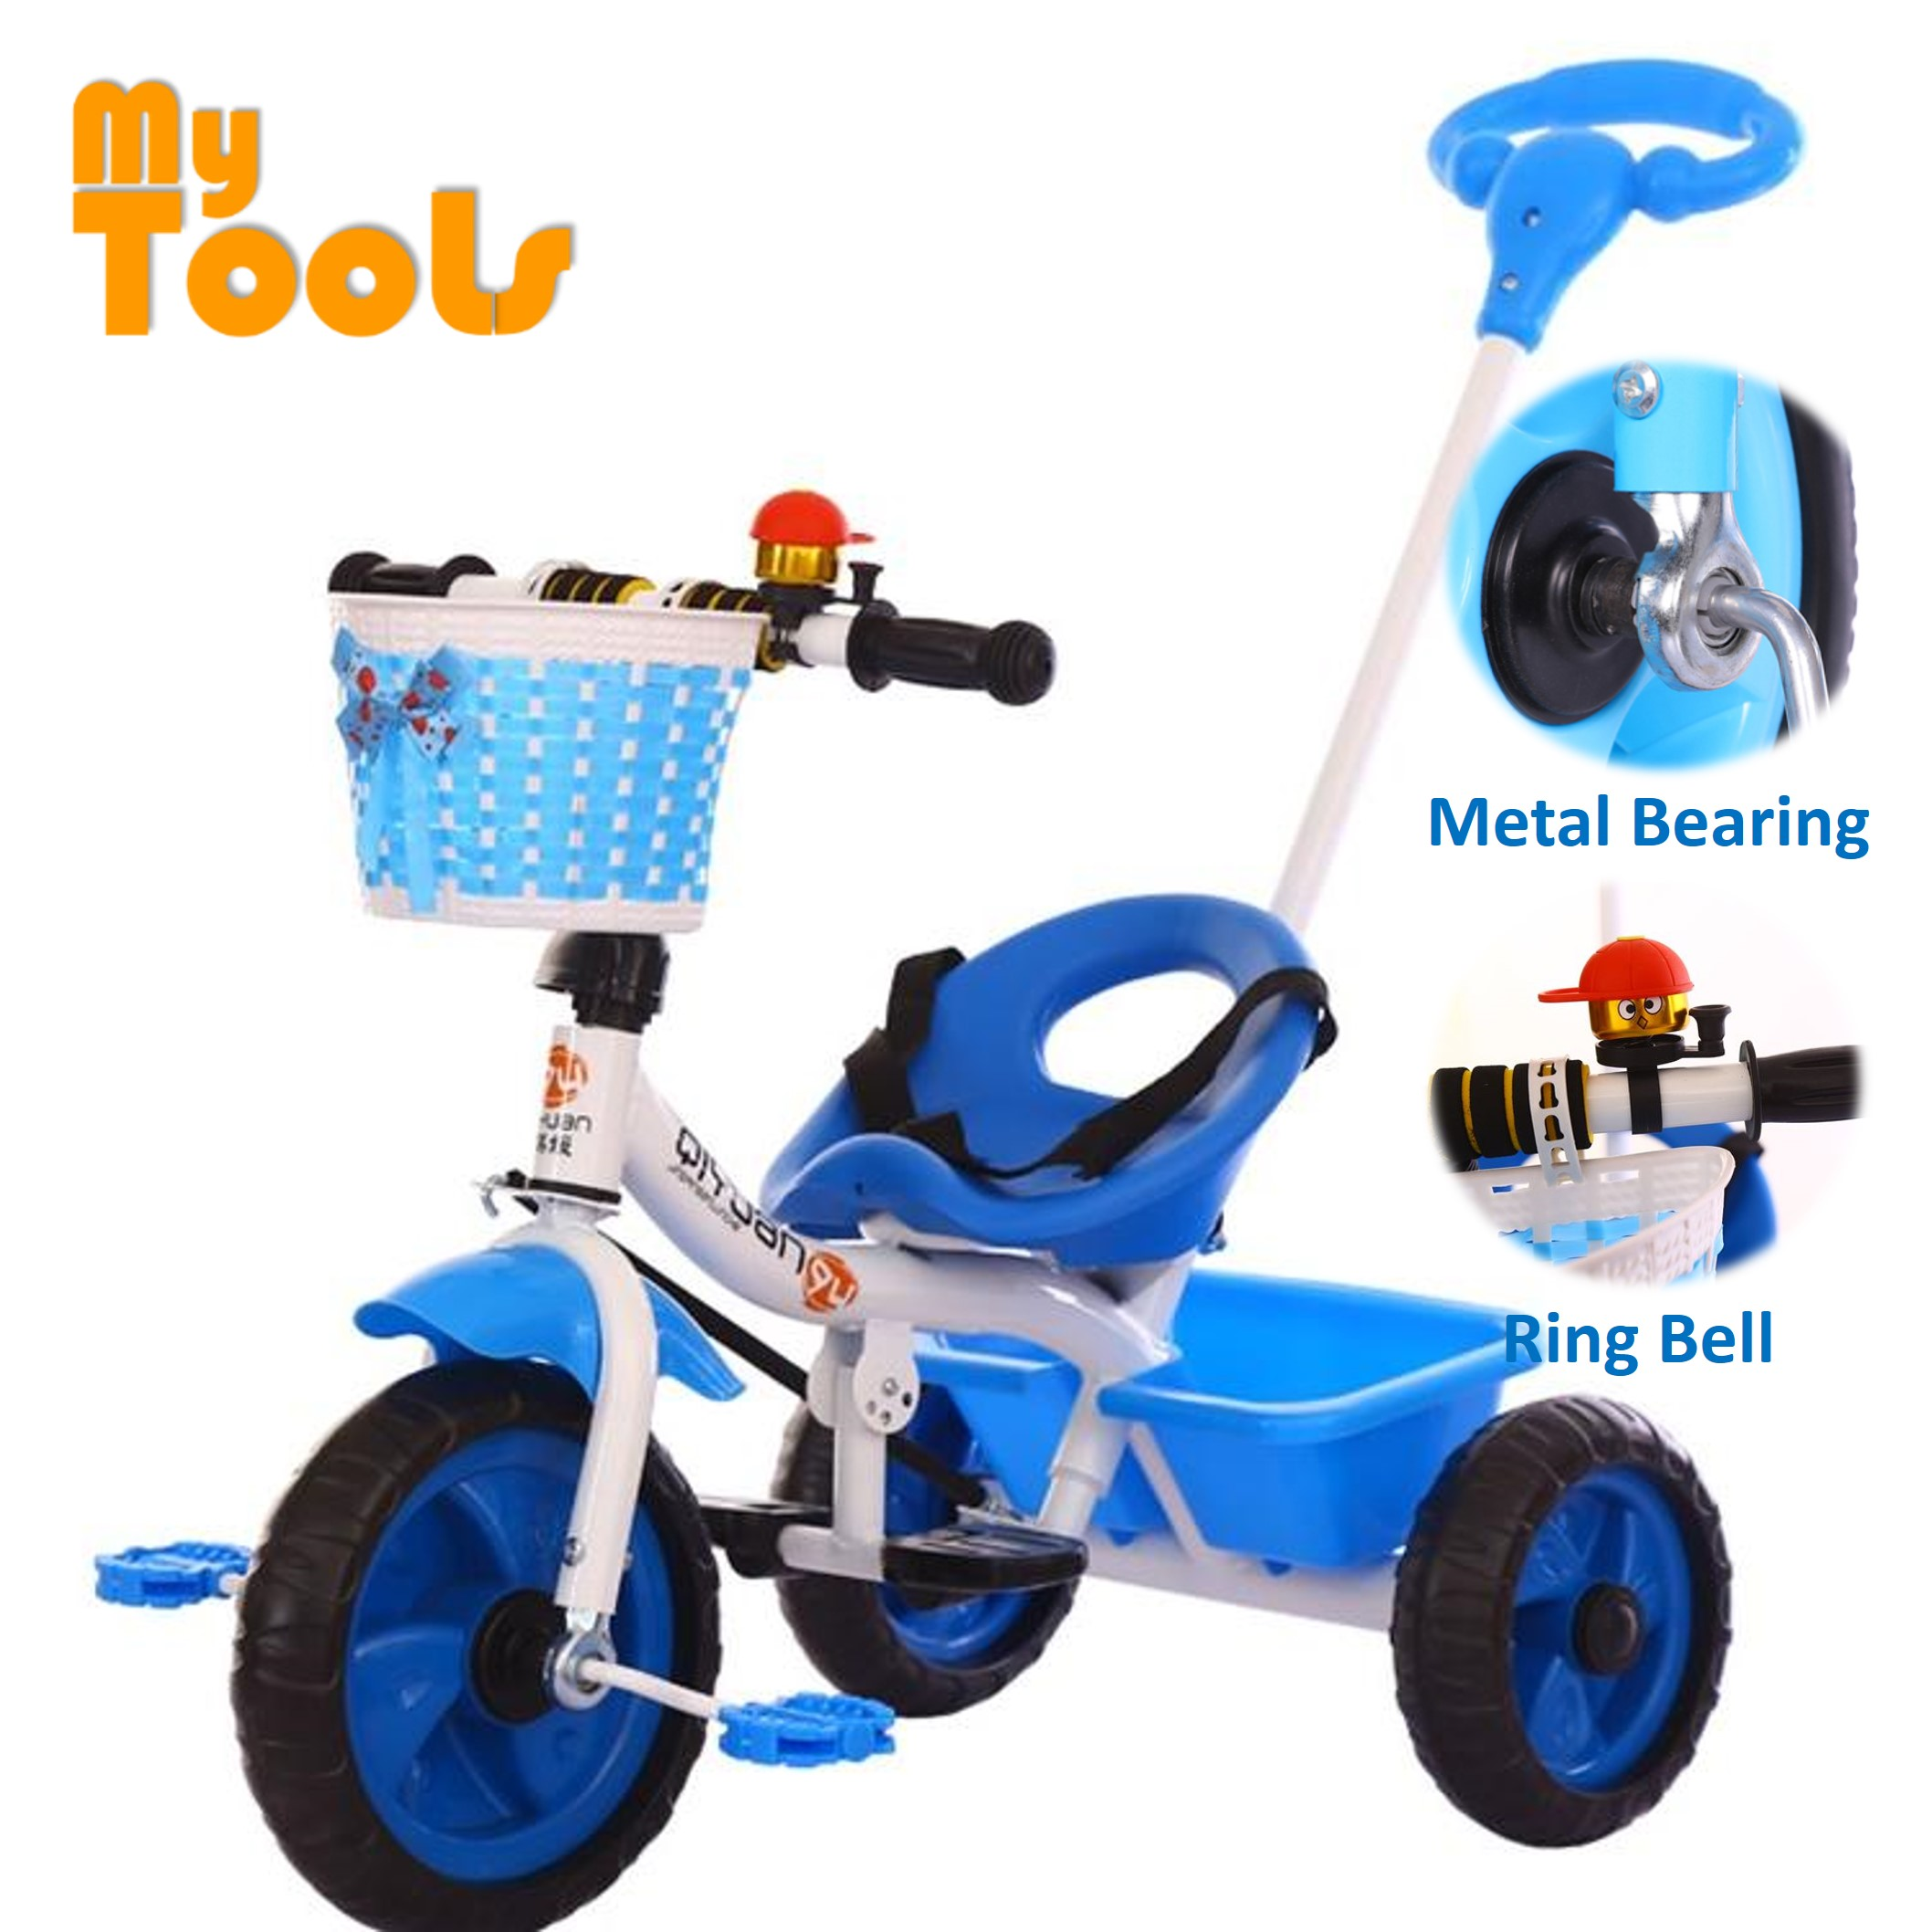 Mytools Premium Kids Hand Push Tricycle Baby Walker Bicycle Ride On Bikes (Blue)